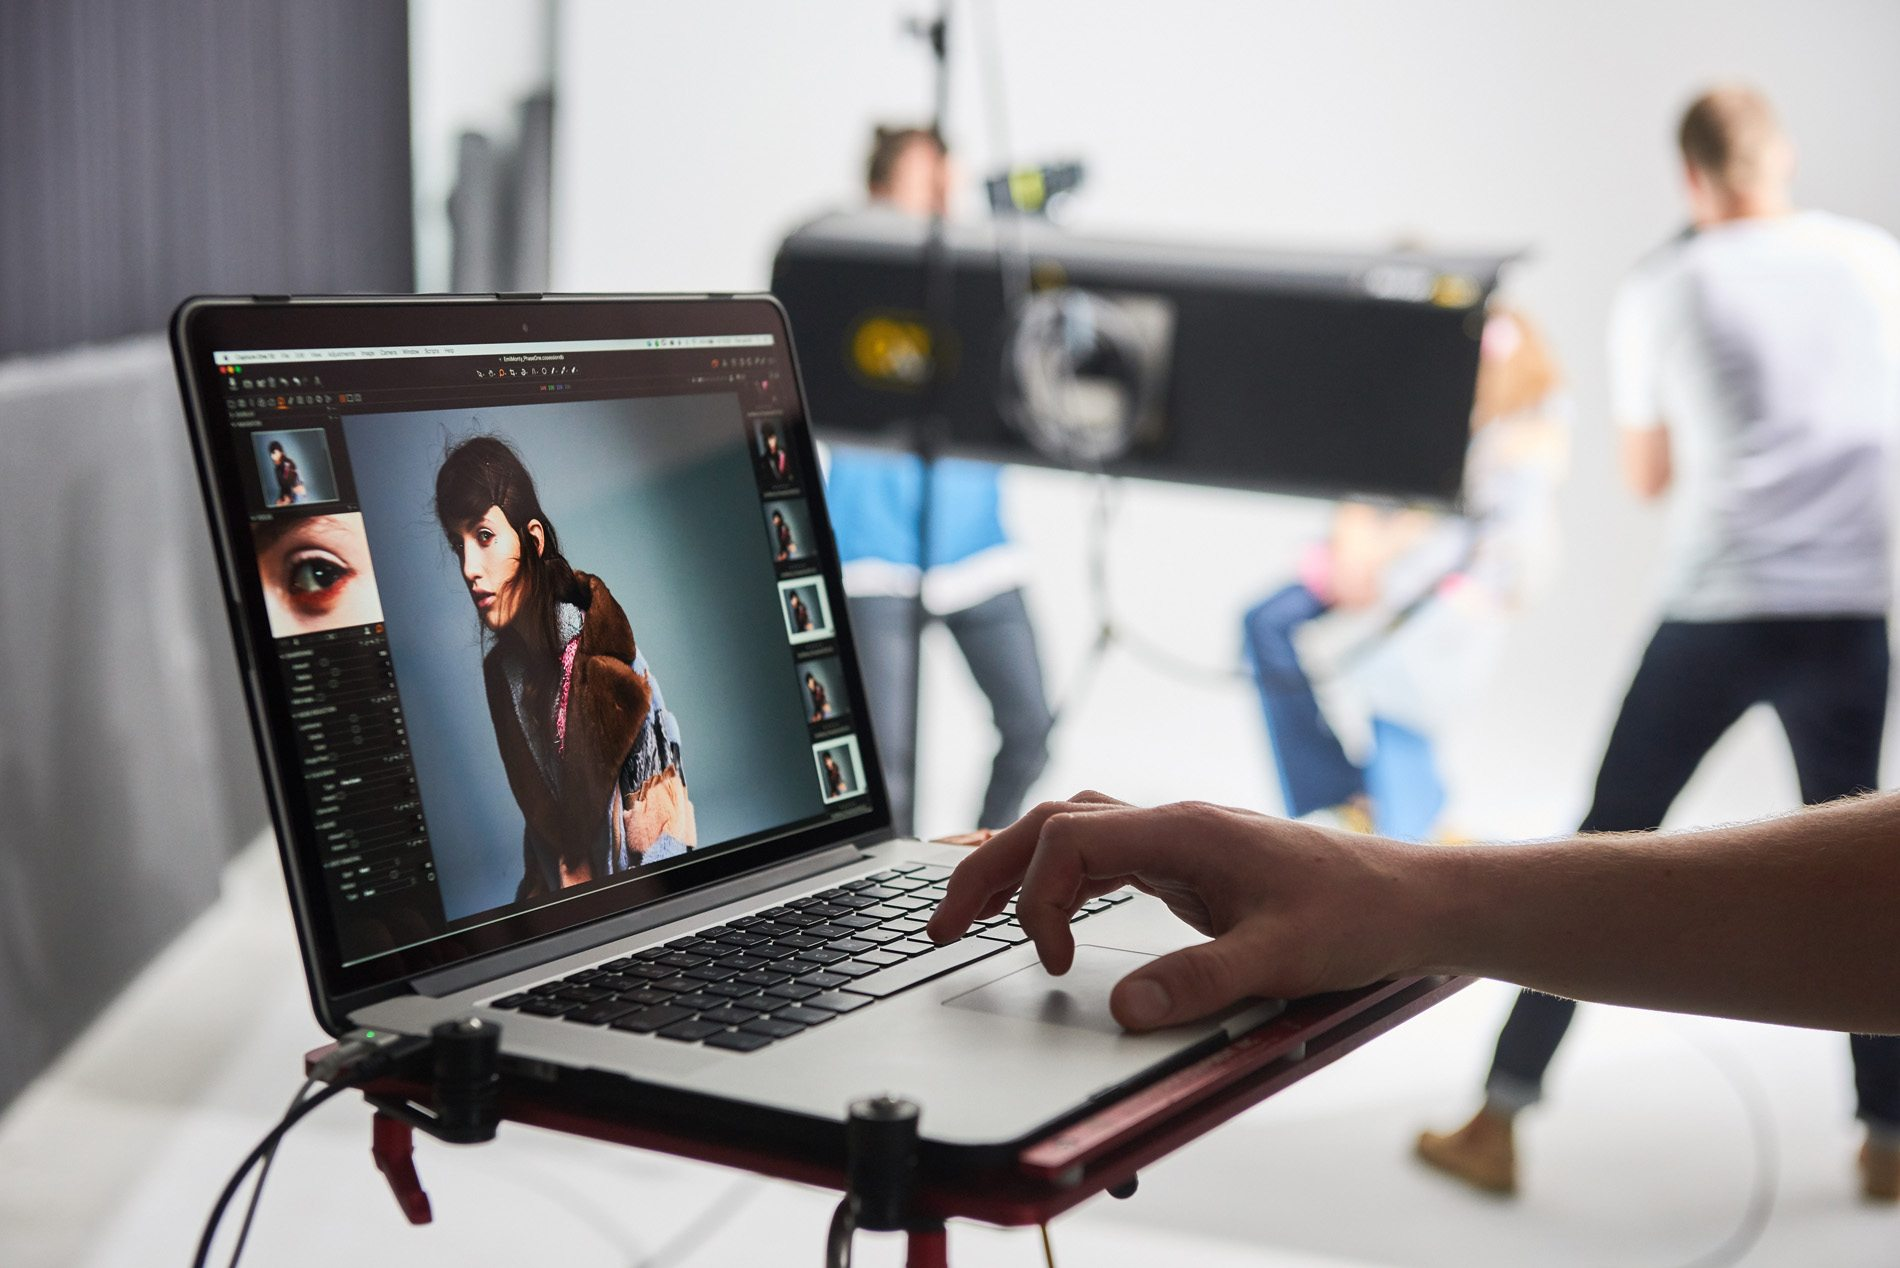 capture one tethering explained, studio setup